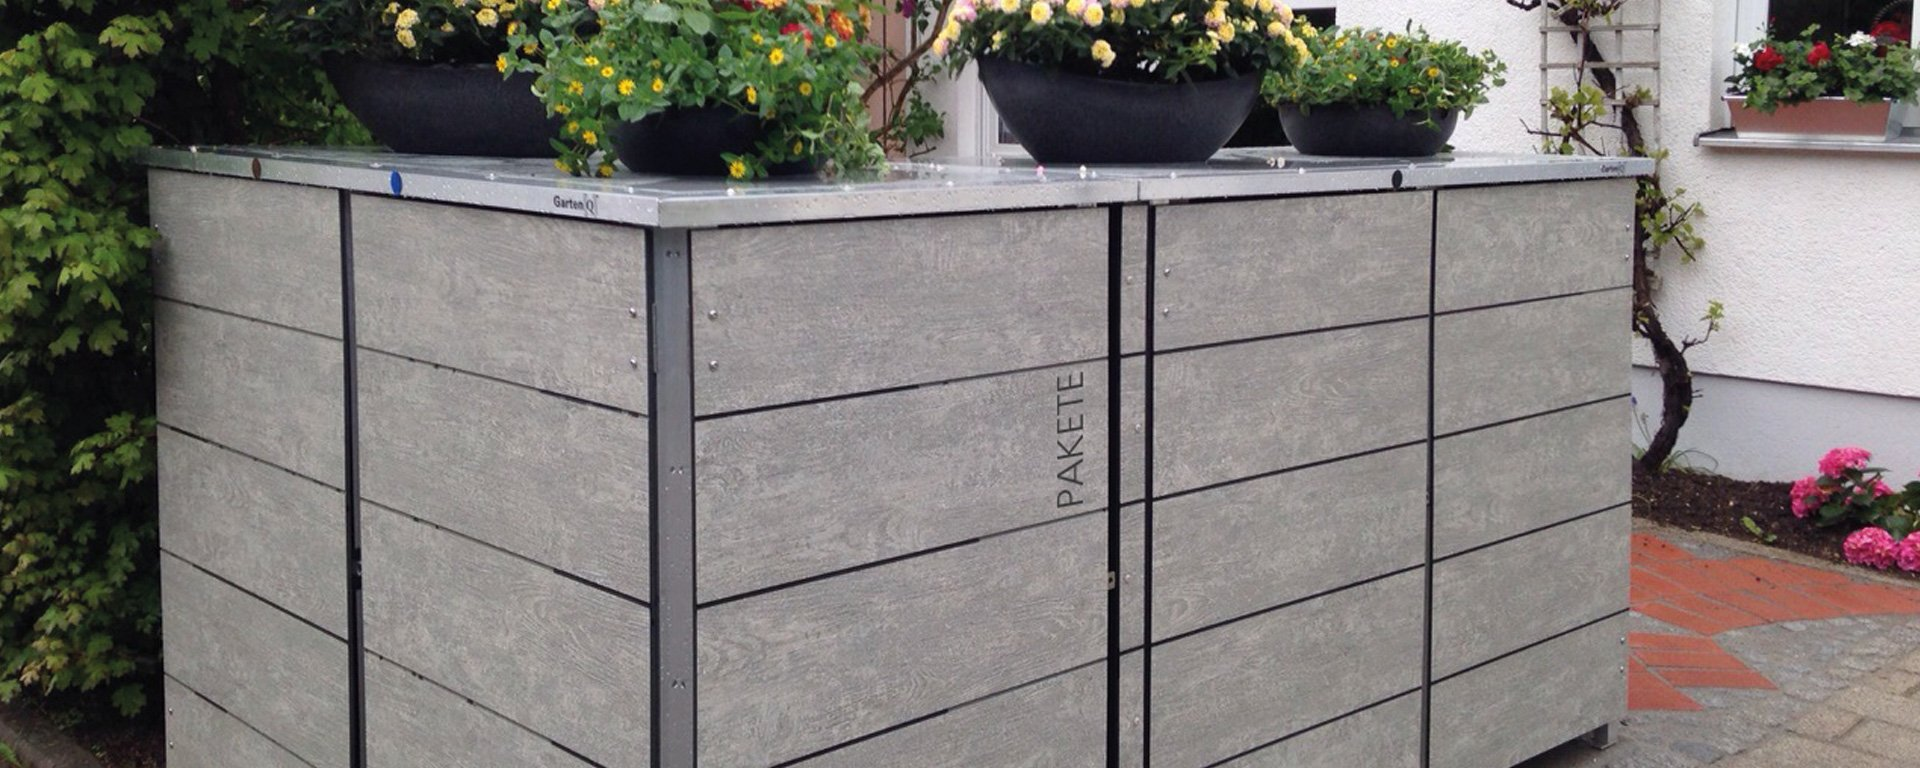 m lltonnenbox design kollektion ideen garten design als. Black Bedroom Furniture Sets. Home Design Ideas